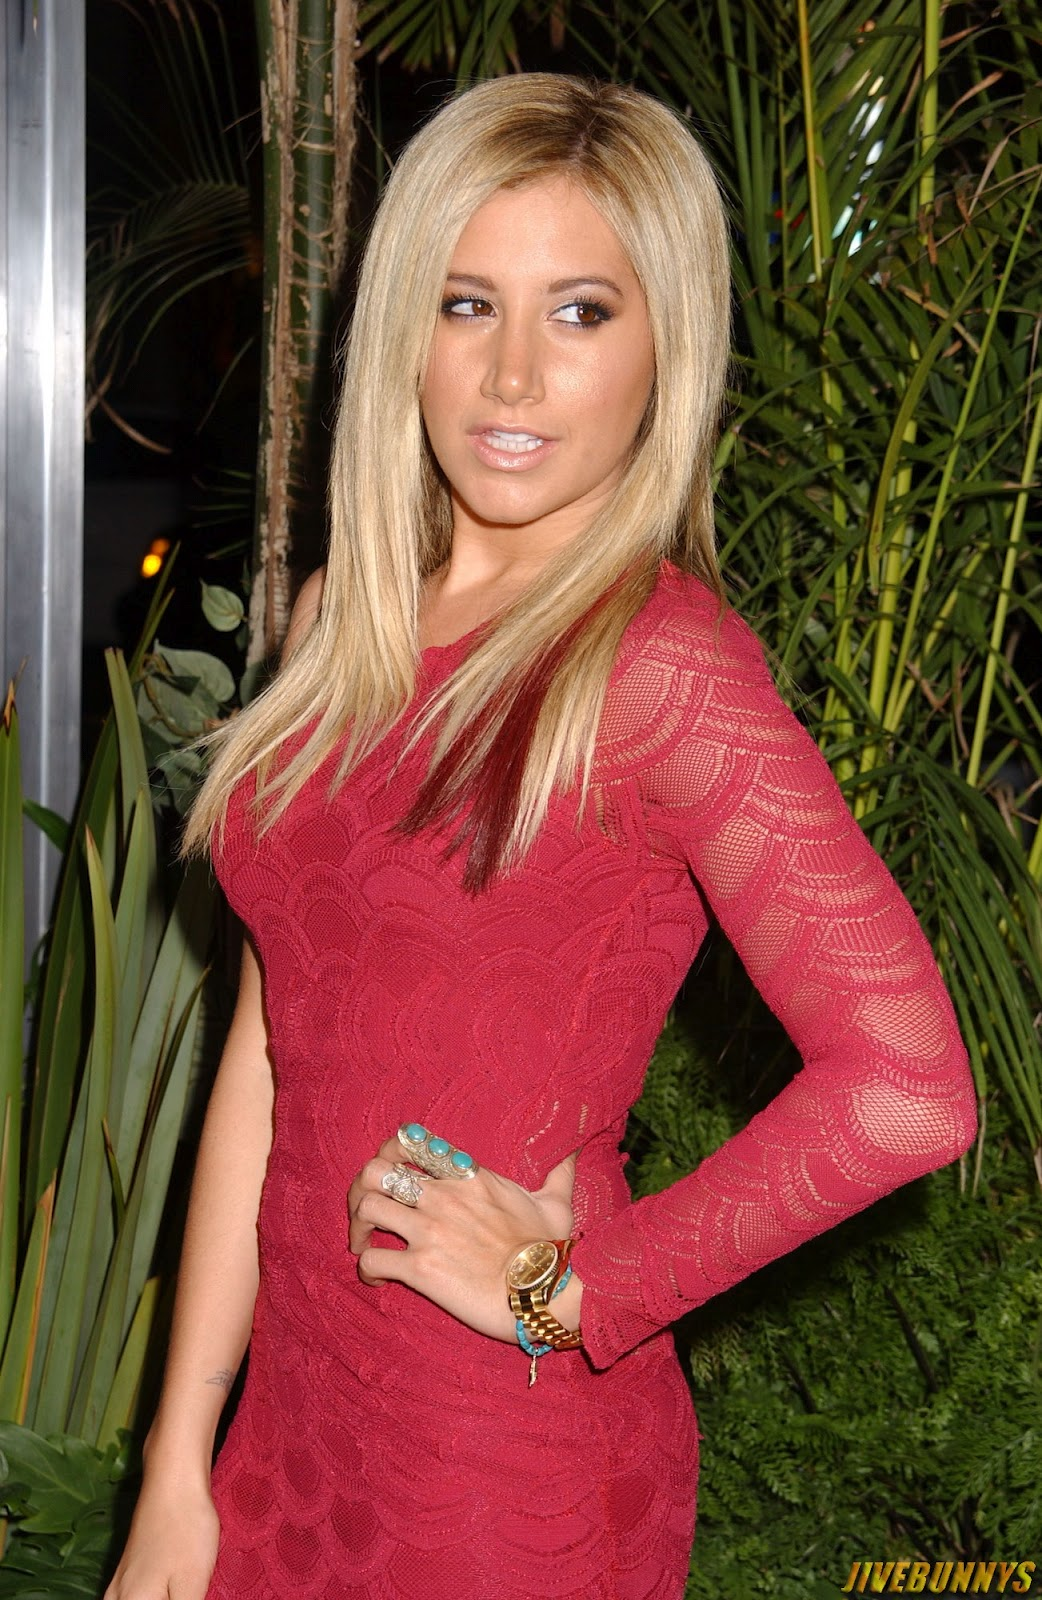 ashley tisdale,ashley tisdale twerk,ashley tisdale hot,ashley tisdale engaged,ashley tisdale twitter,ashley tisdale net worth,ashley tisdale instagram,ashley tisdale boyfriend,ashley tisdale scary movie 5,ashley tisdale nose job